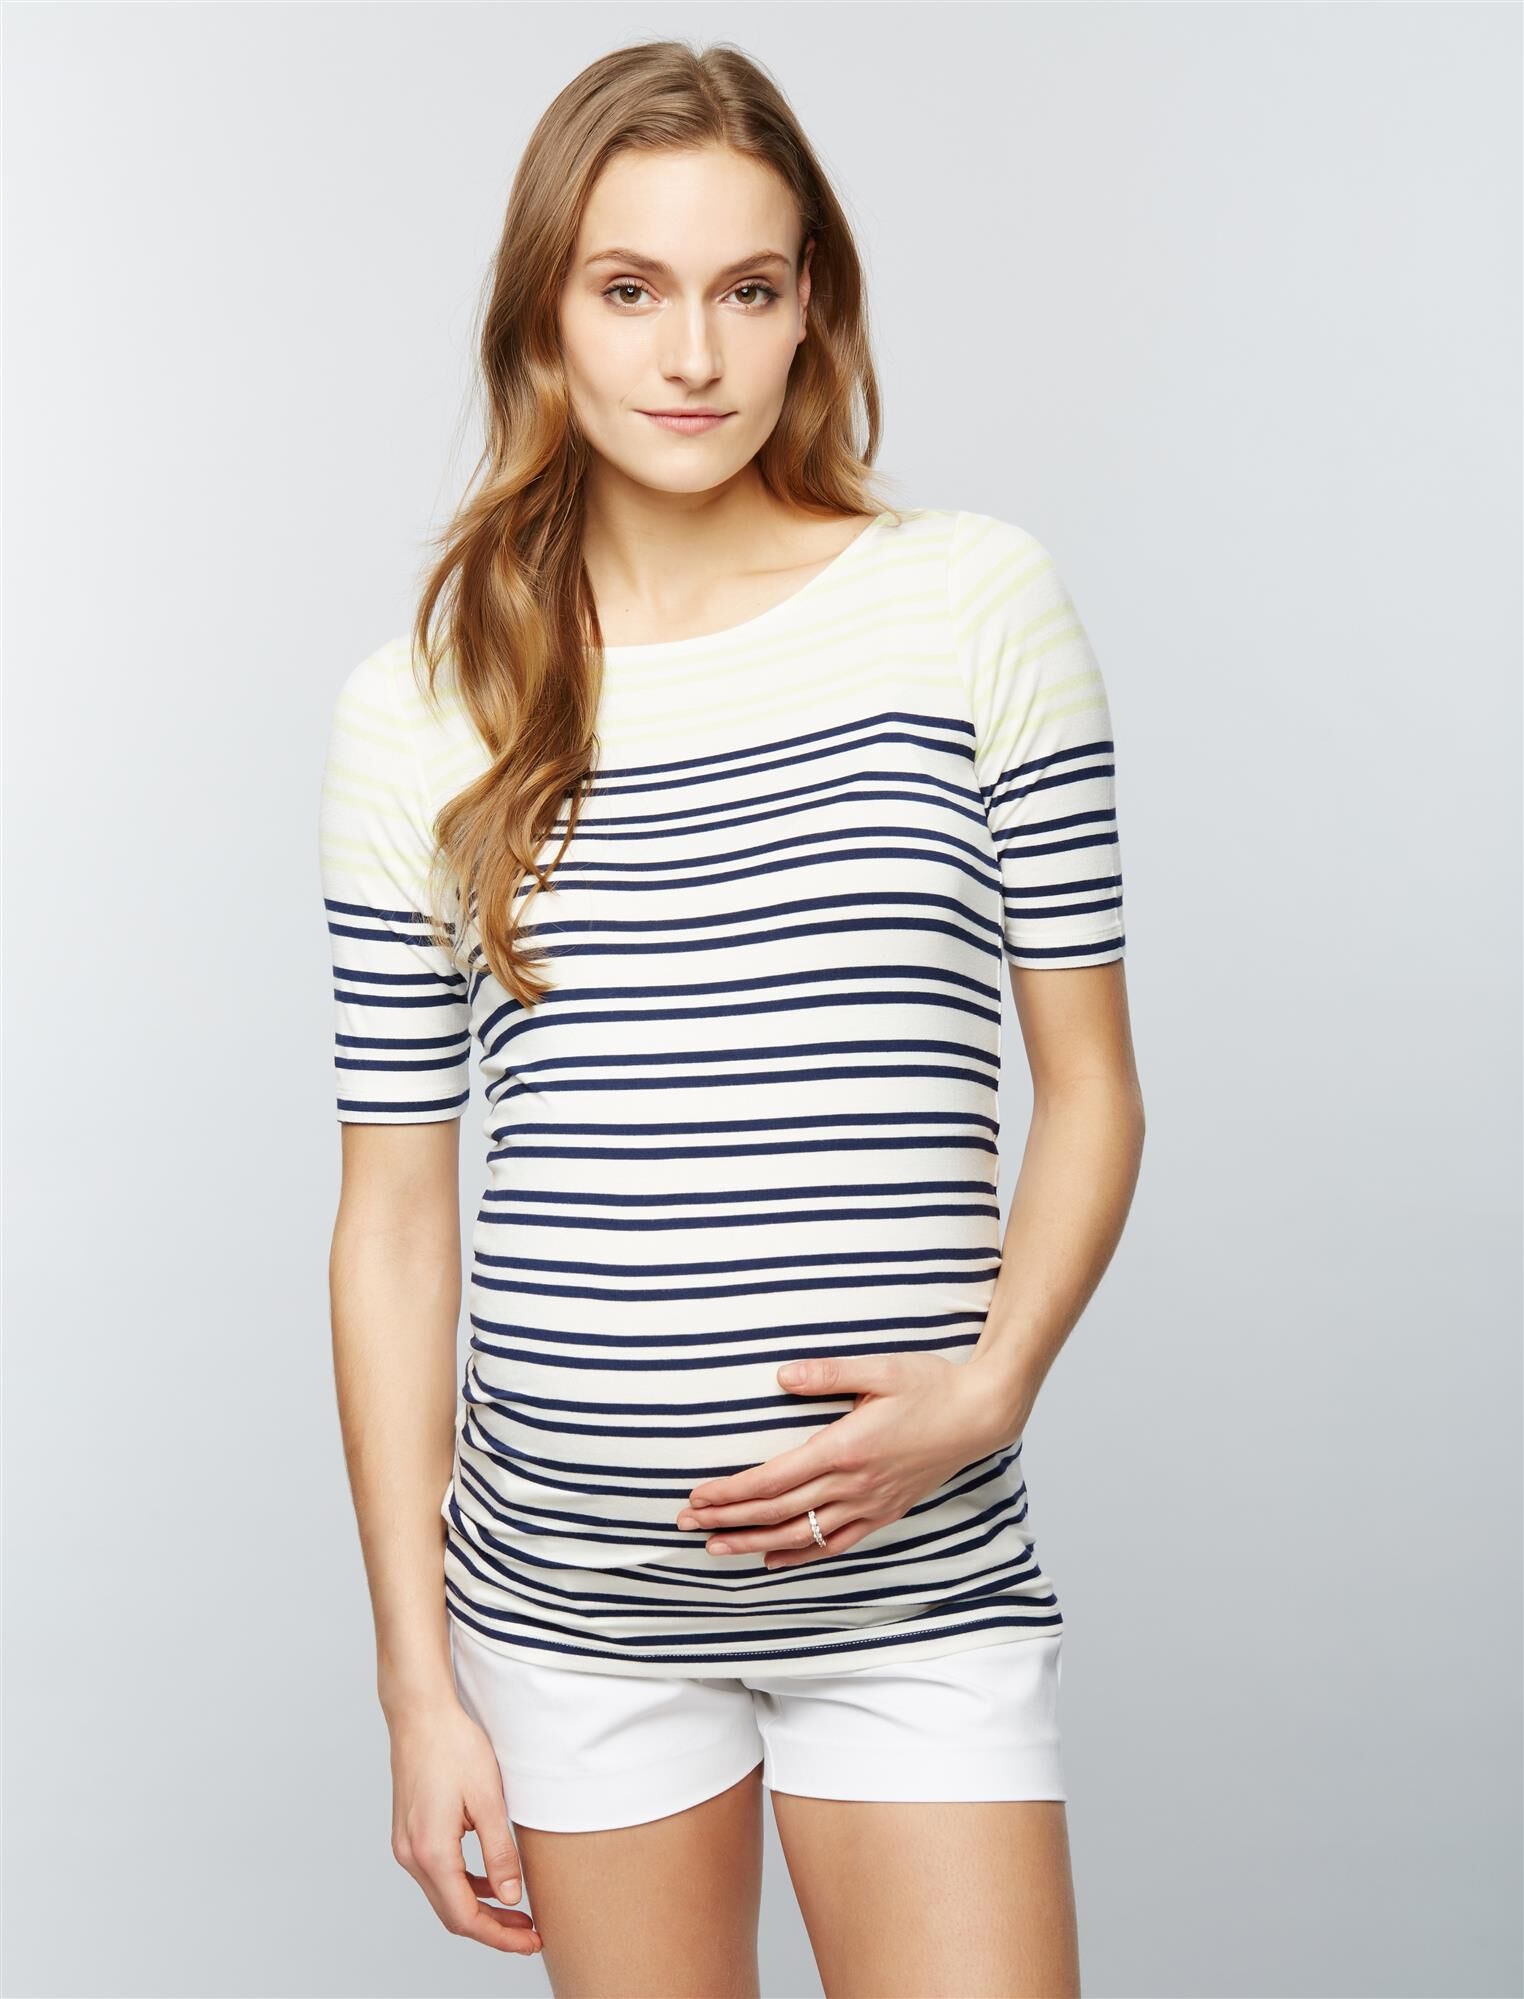 Luxe Essentials Denim Striped Maternity Top